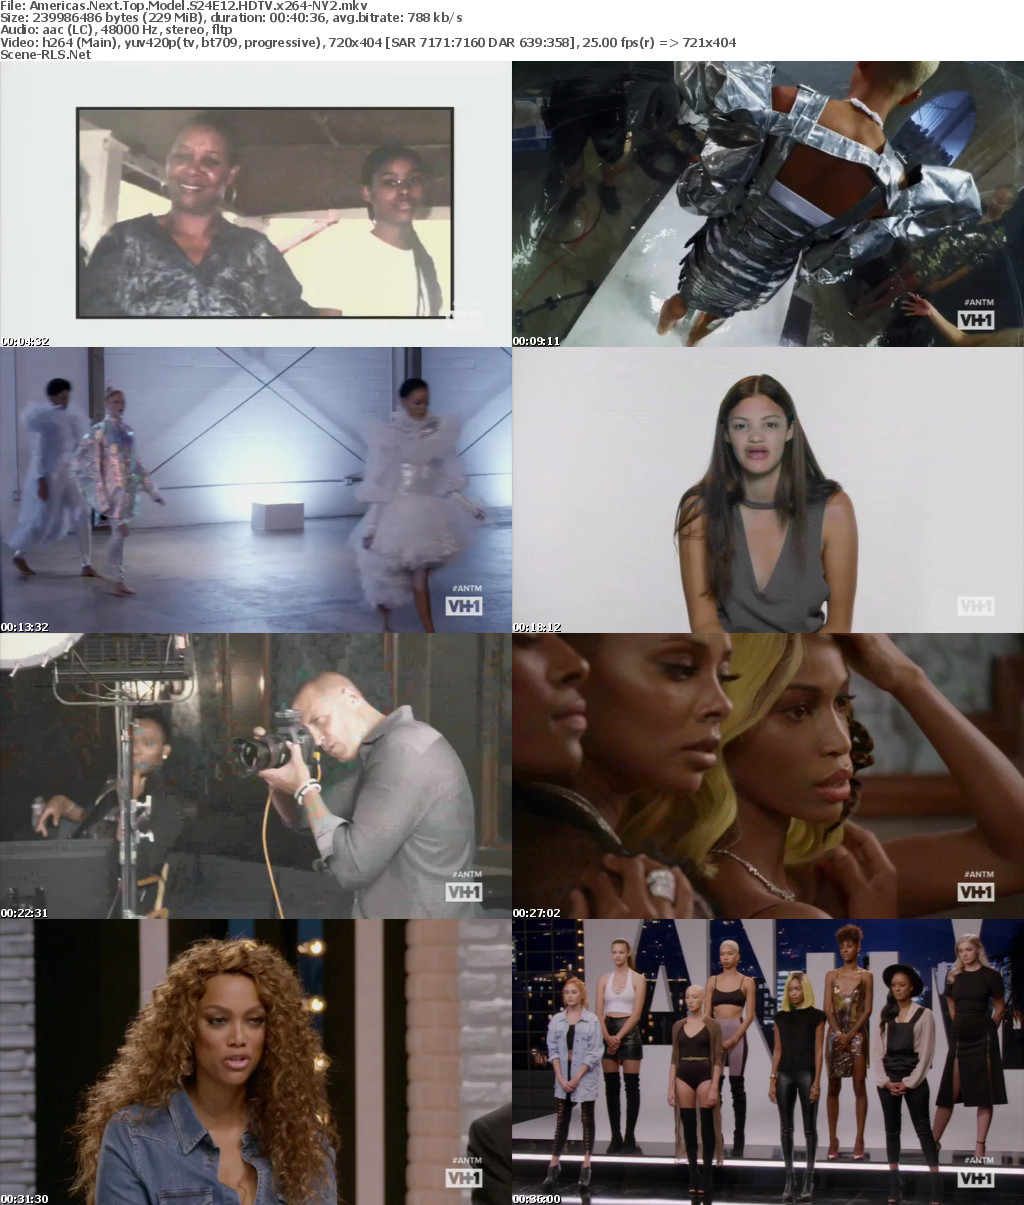 Americas Next Top Model S24E12 HDTV X264-NY2